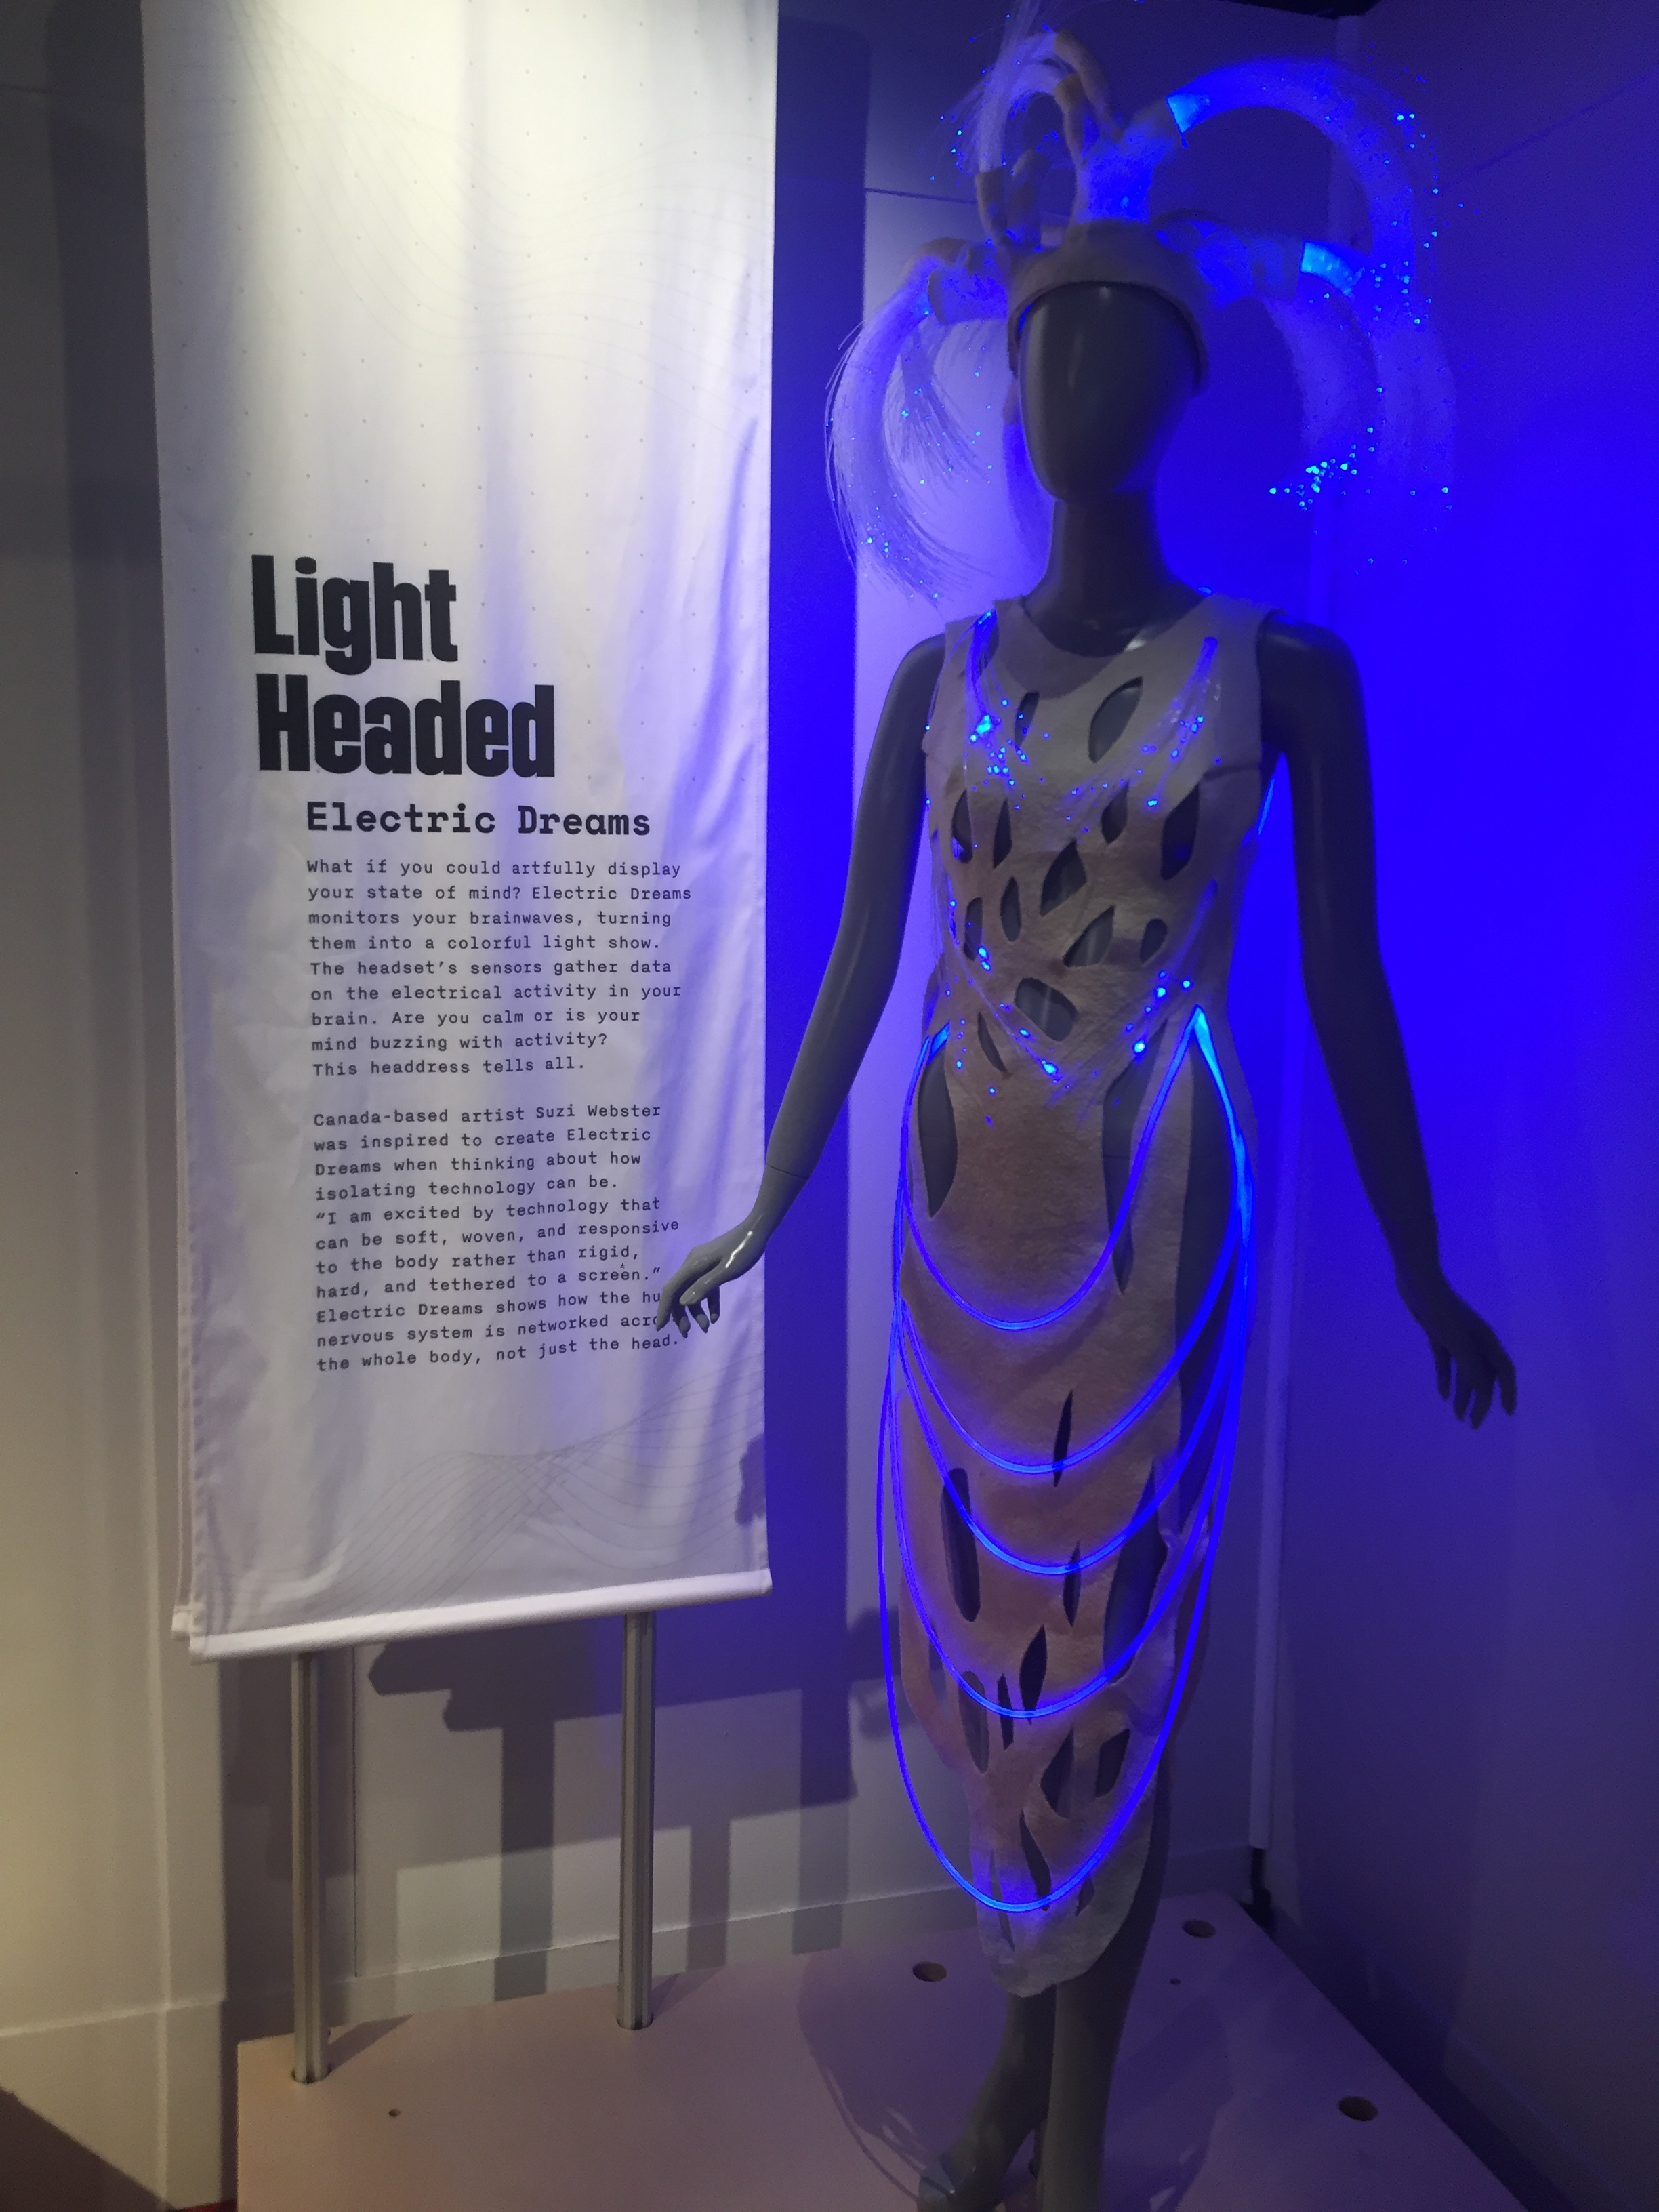 Suzi Webster/Quantum XPR created a dress that lights up to show electrical activity in the brain, telegraphing your state of mind.